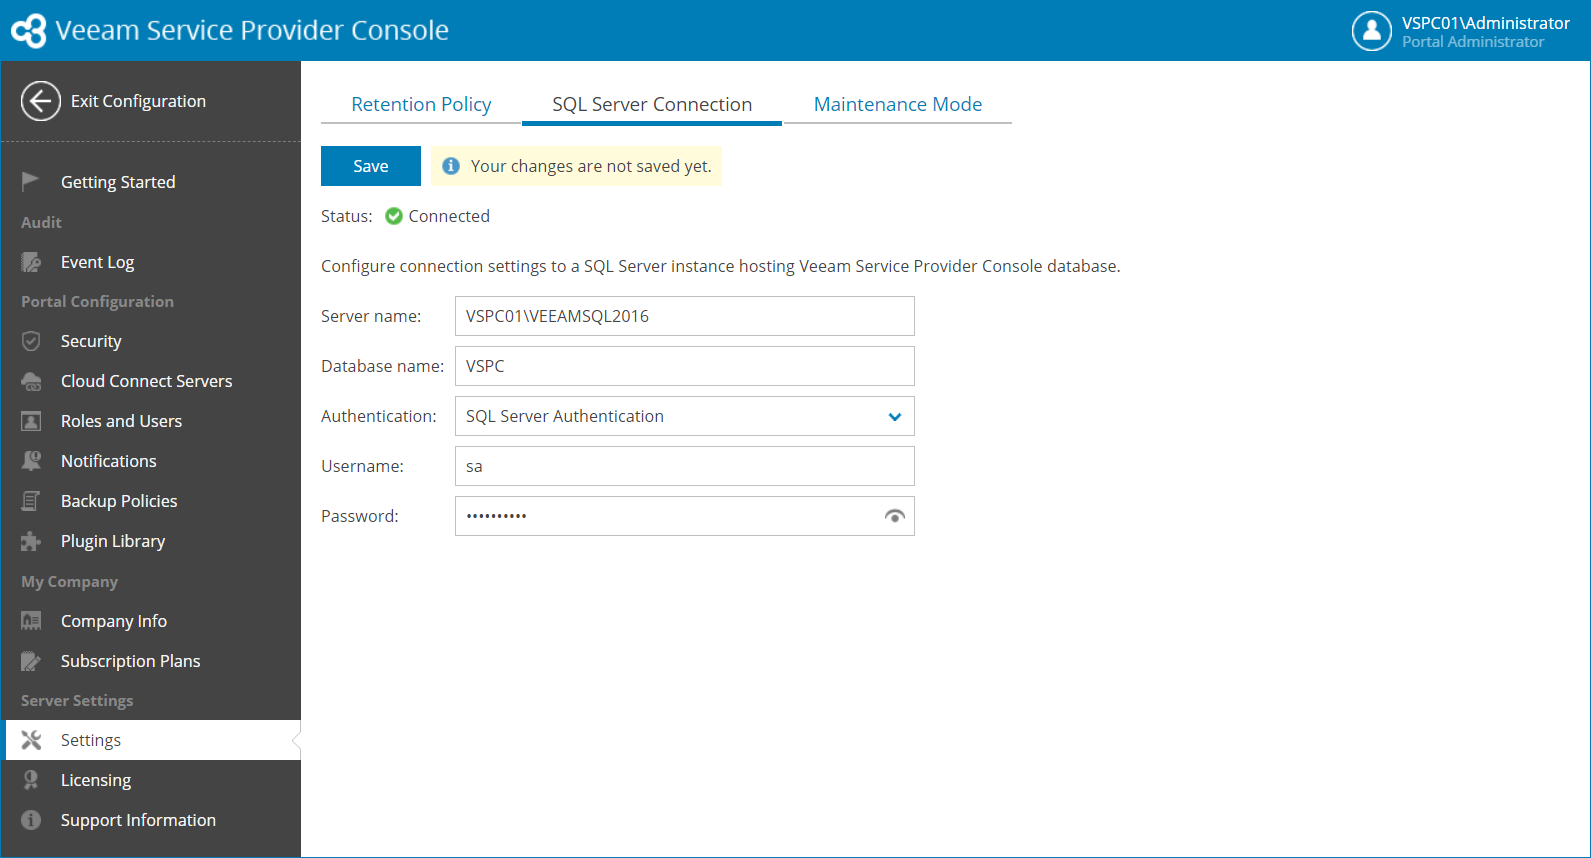 Configuring SQL Server Connection Settings - Veeam